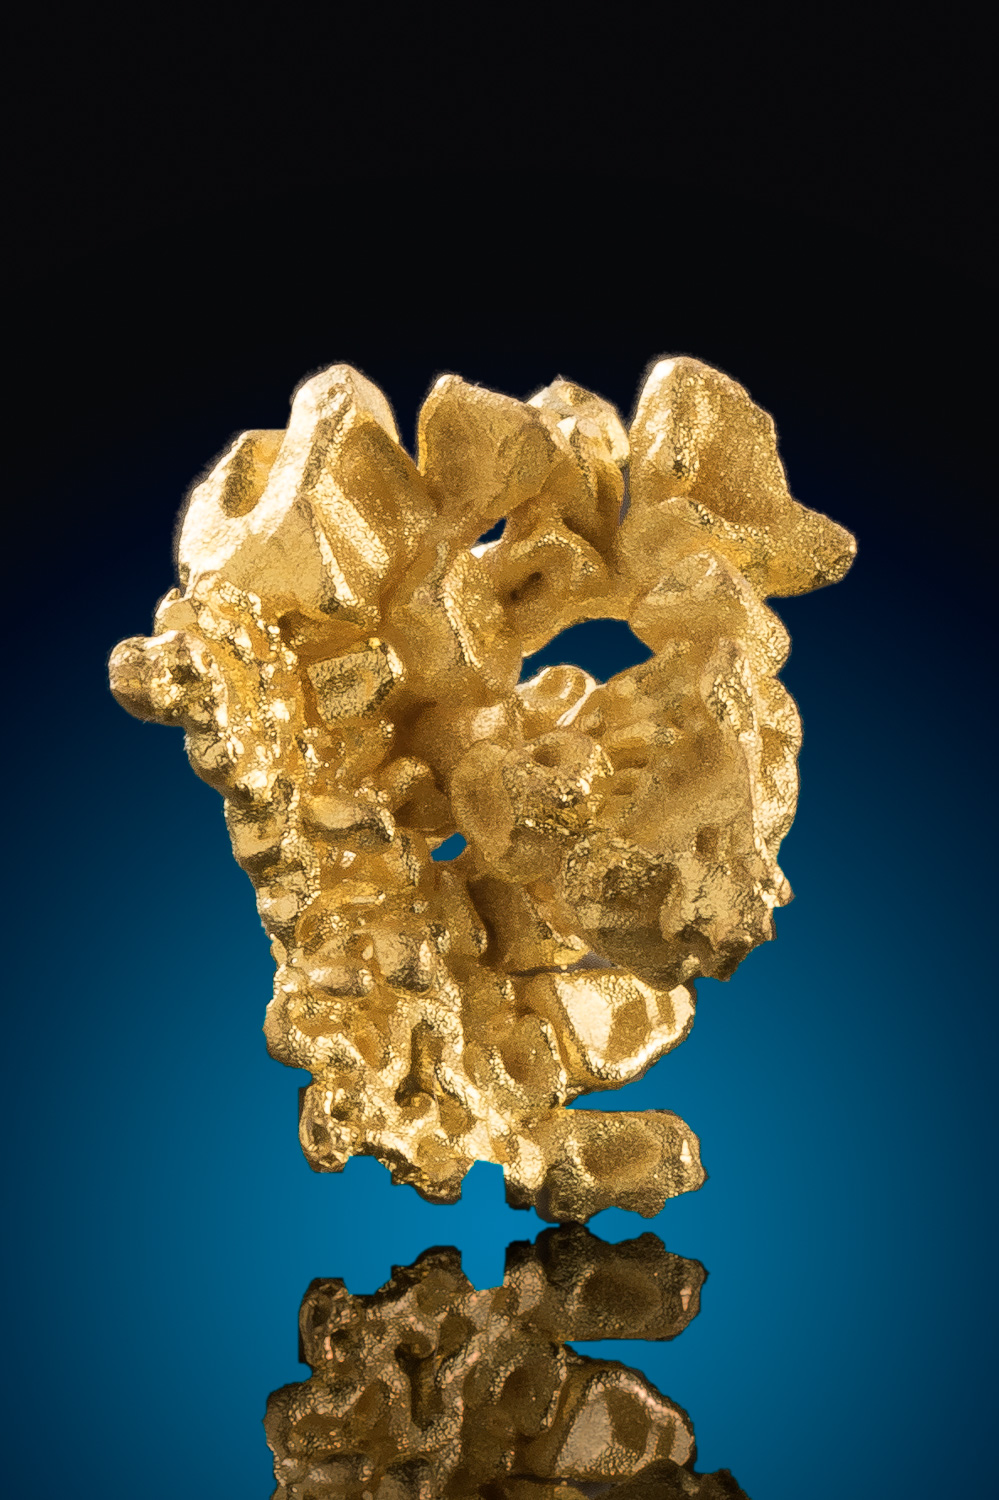 Thick and Intricate - Gold Crystal from the Artru Gold Mine